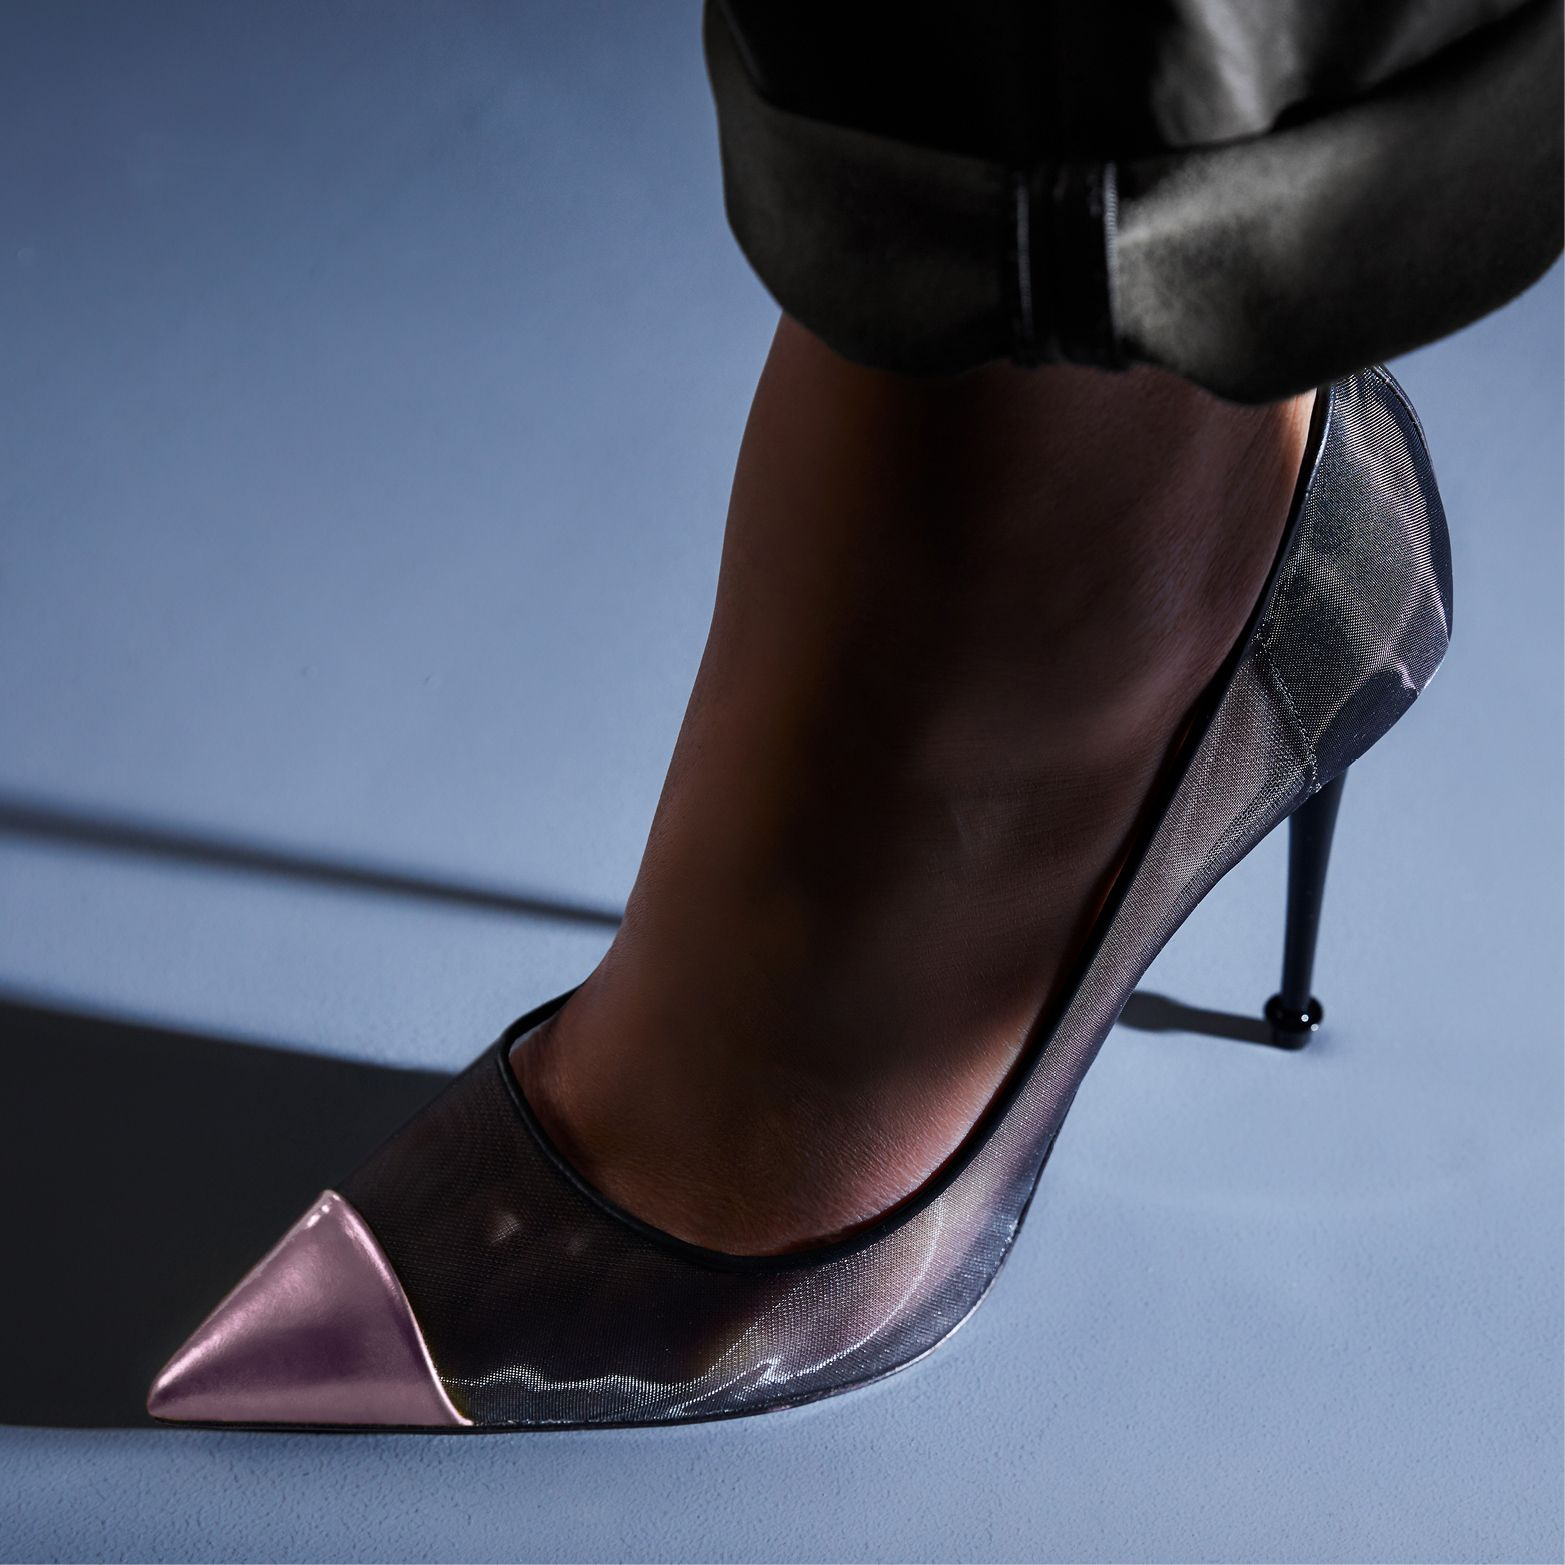 Most wanted - TOM FORD Mesh Pumps.  #TOMFORD